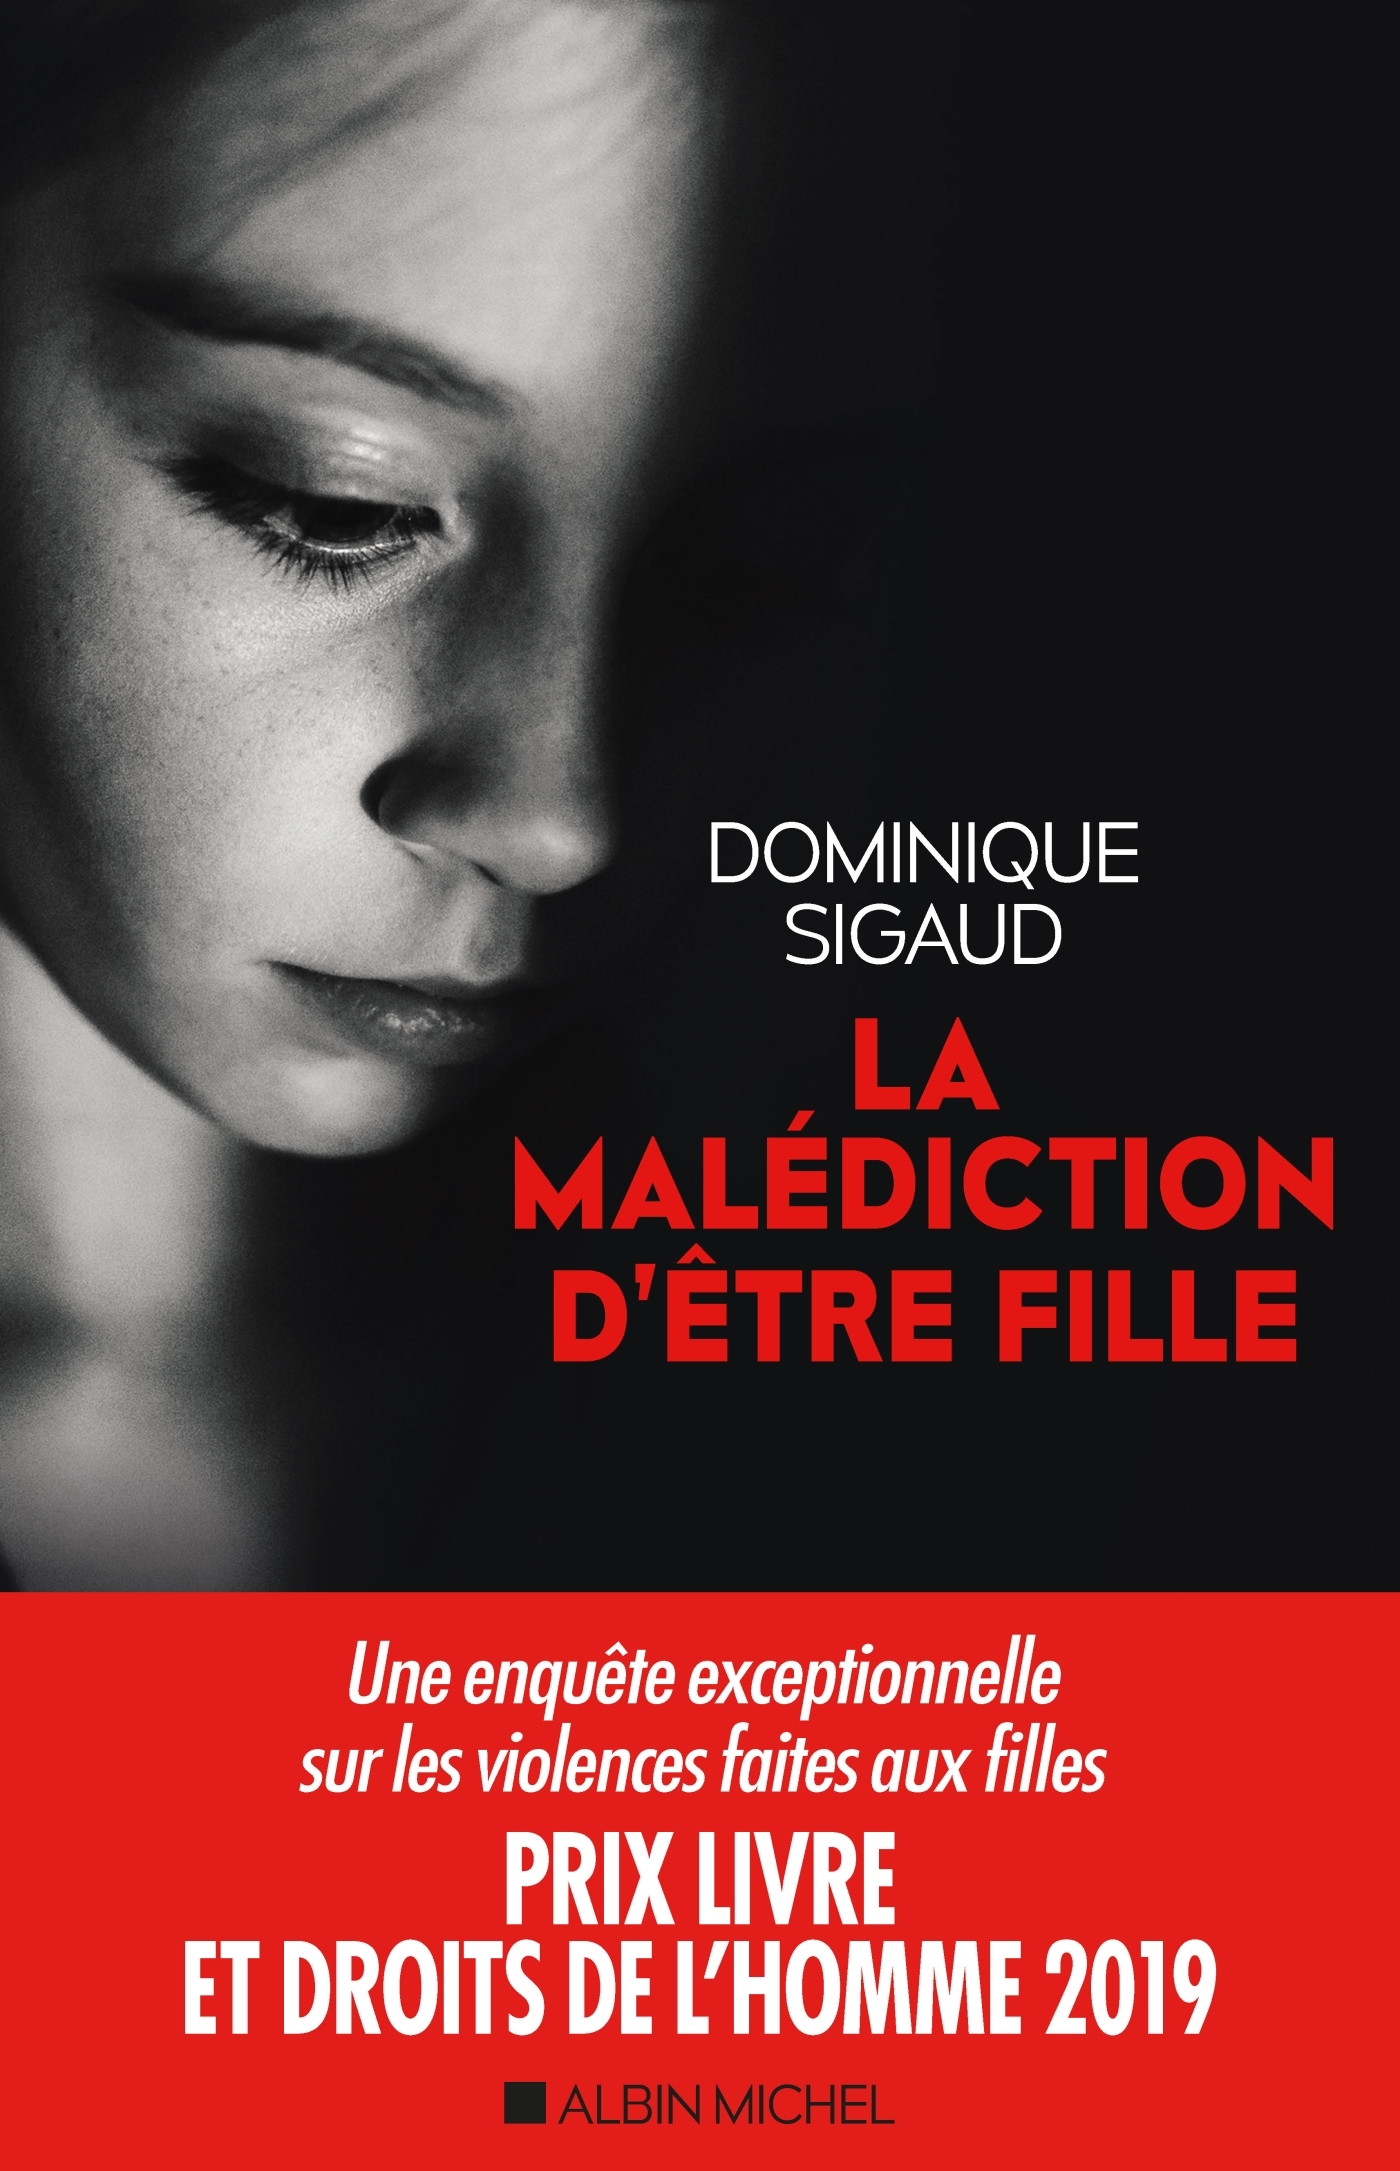 LA MALEDICTION D'ETRE FILLE